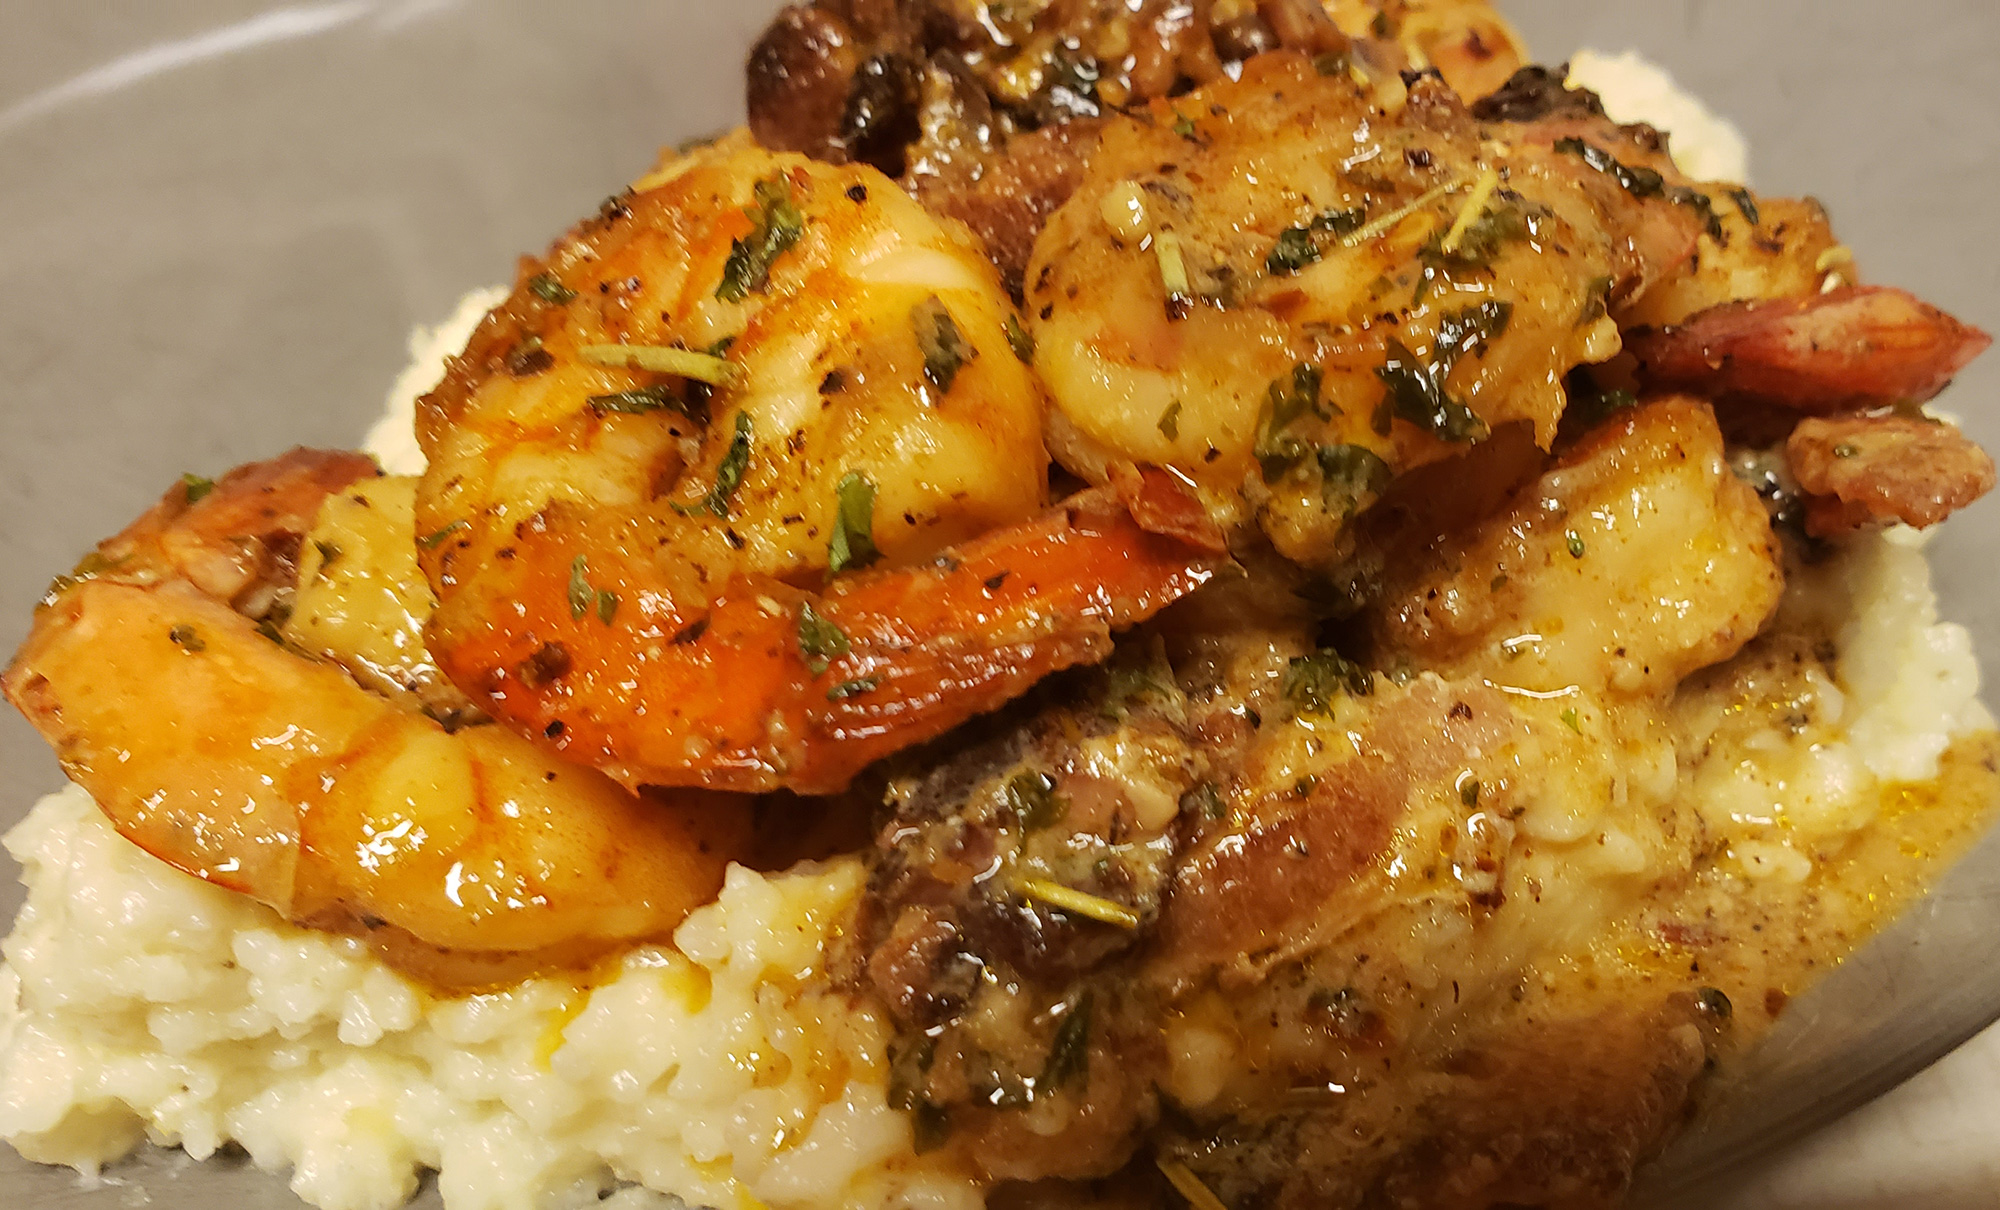 Recipe: Southern Style White Cheddar Shrimp and Grits